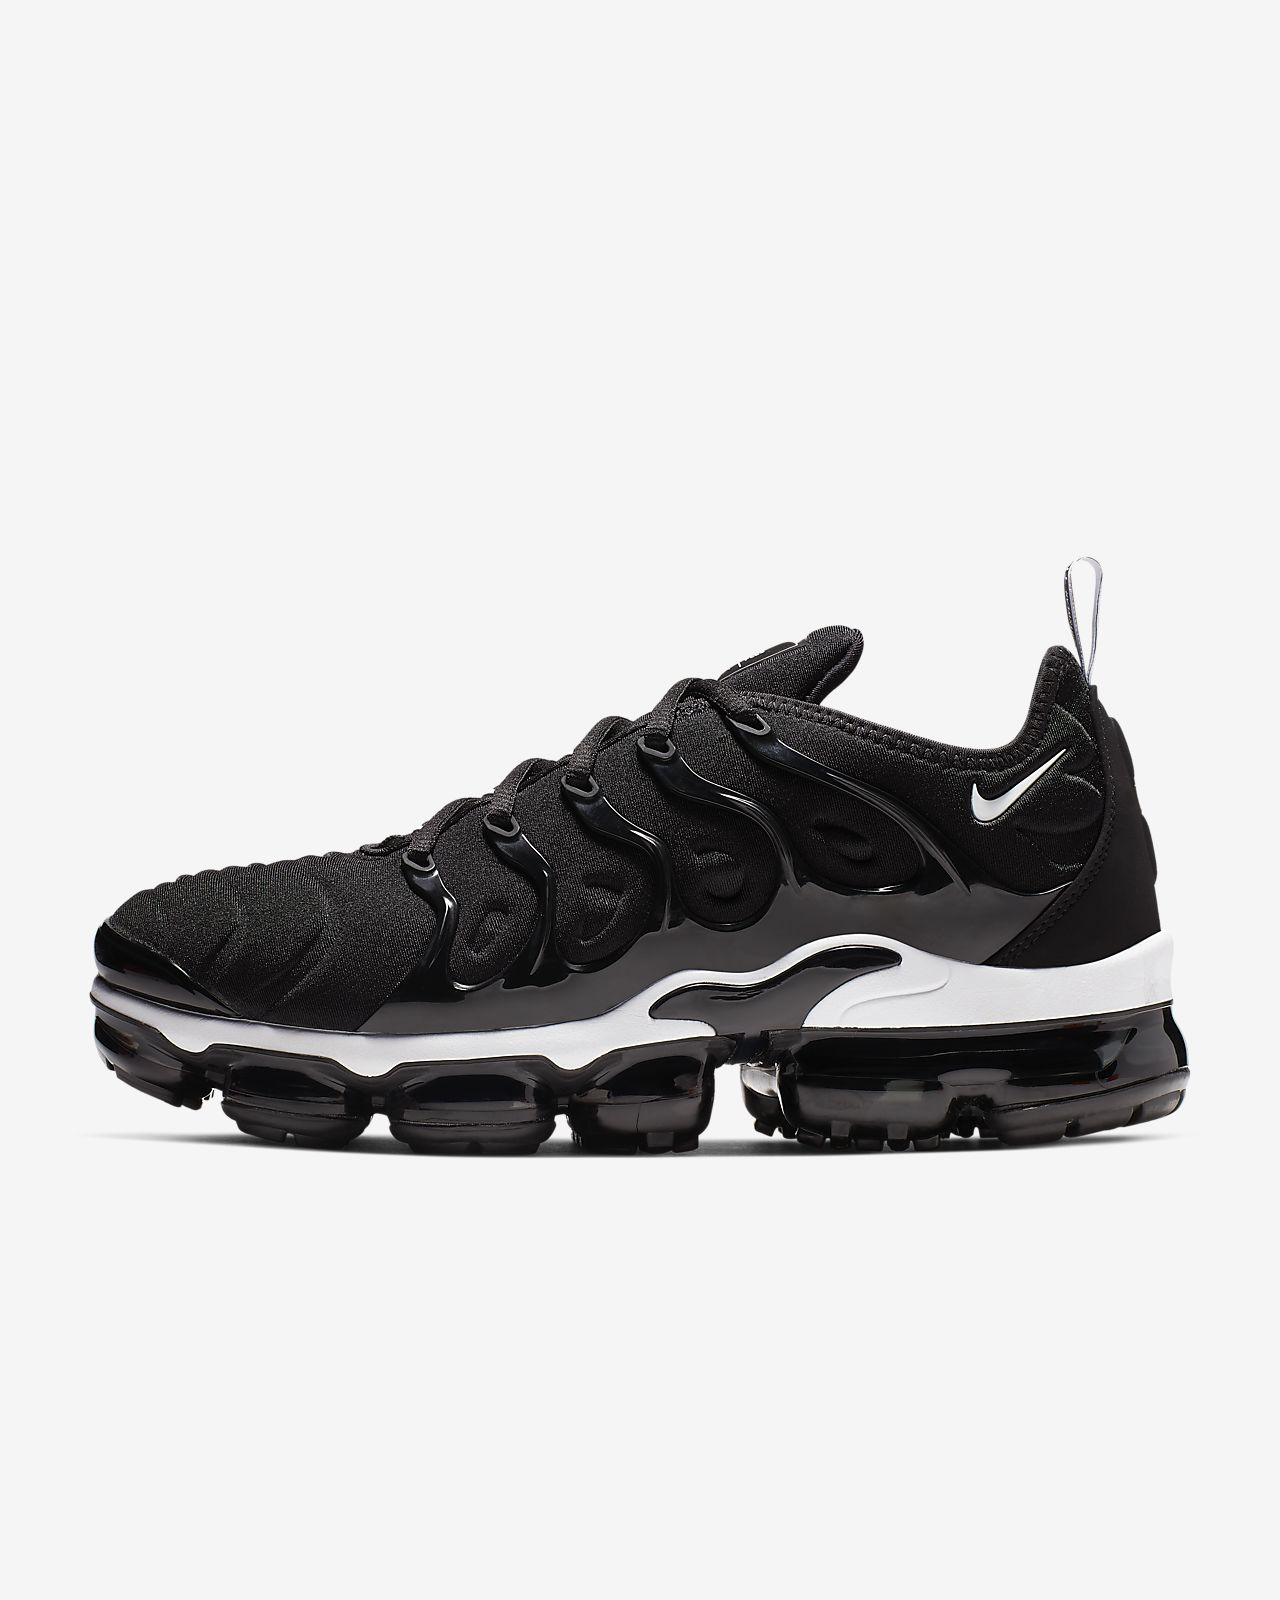 8c8b639ebc2 Nike Air VaporMax Plus Men s Shoe. Nike.com CA